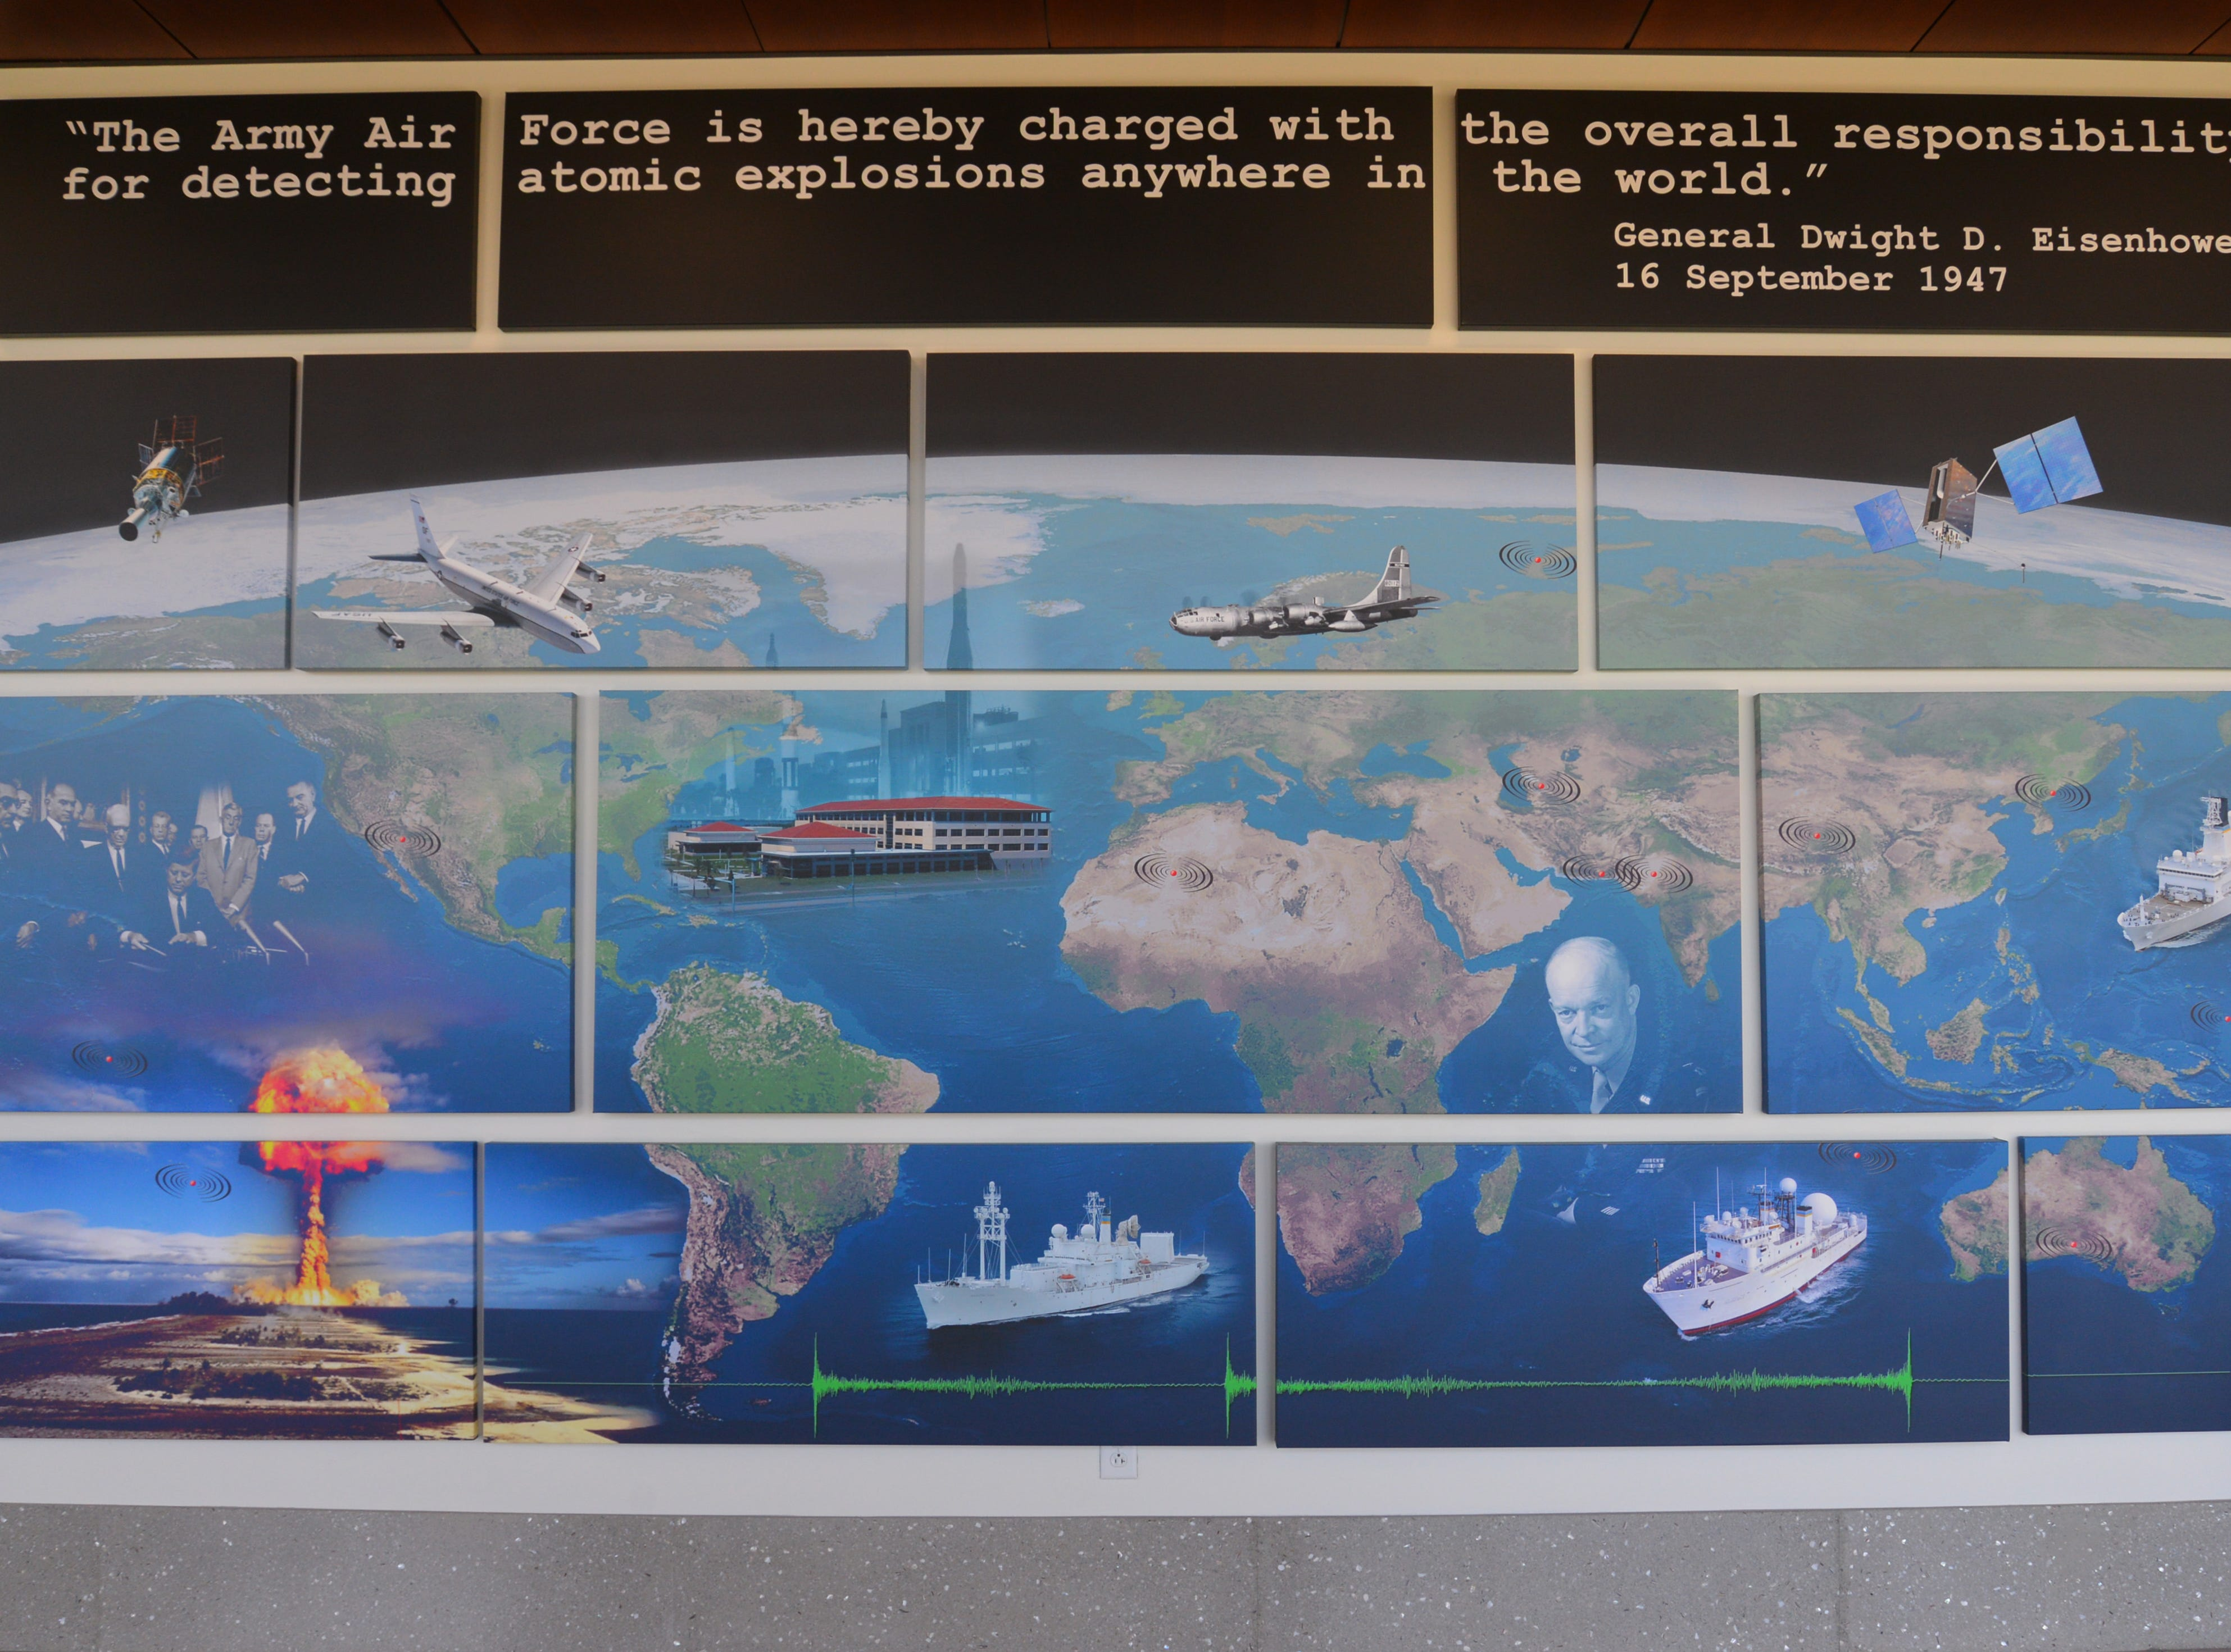 This mural inside an AFTAC ground-floor hallway depicts the surveillance organization's mission detecting nuclear explosions around the world.